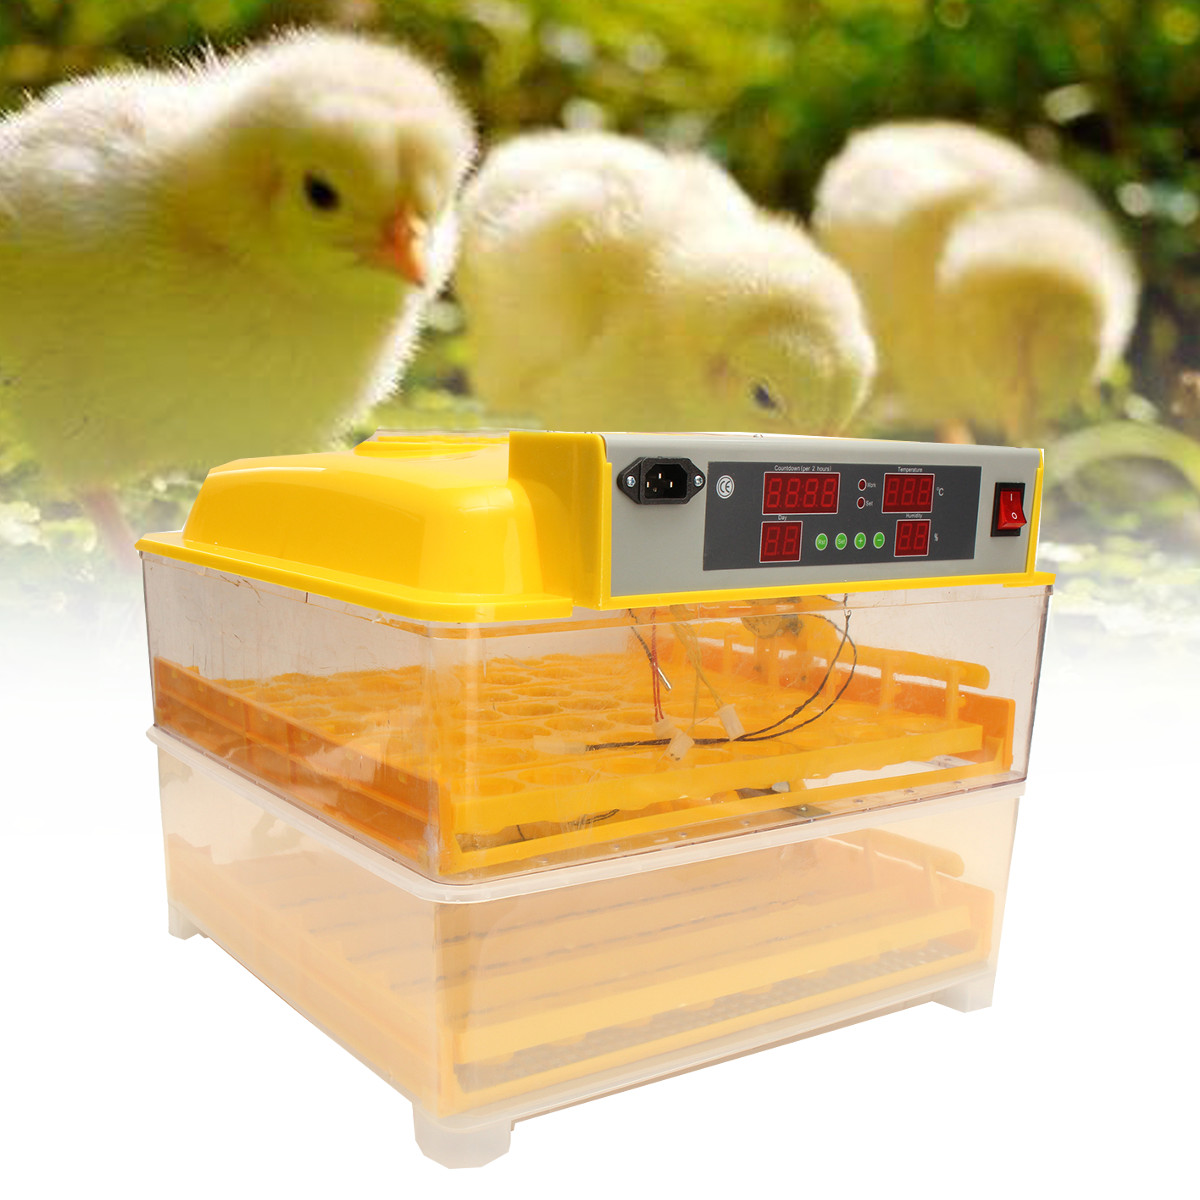 112 Fully Automatic Digital Egg Incubator Egg Hatcher Egg Turning Machine With Automatic System